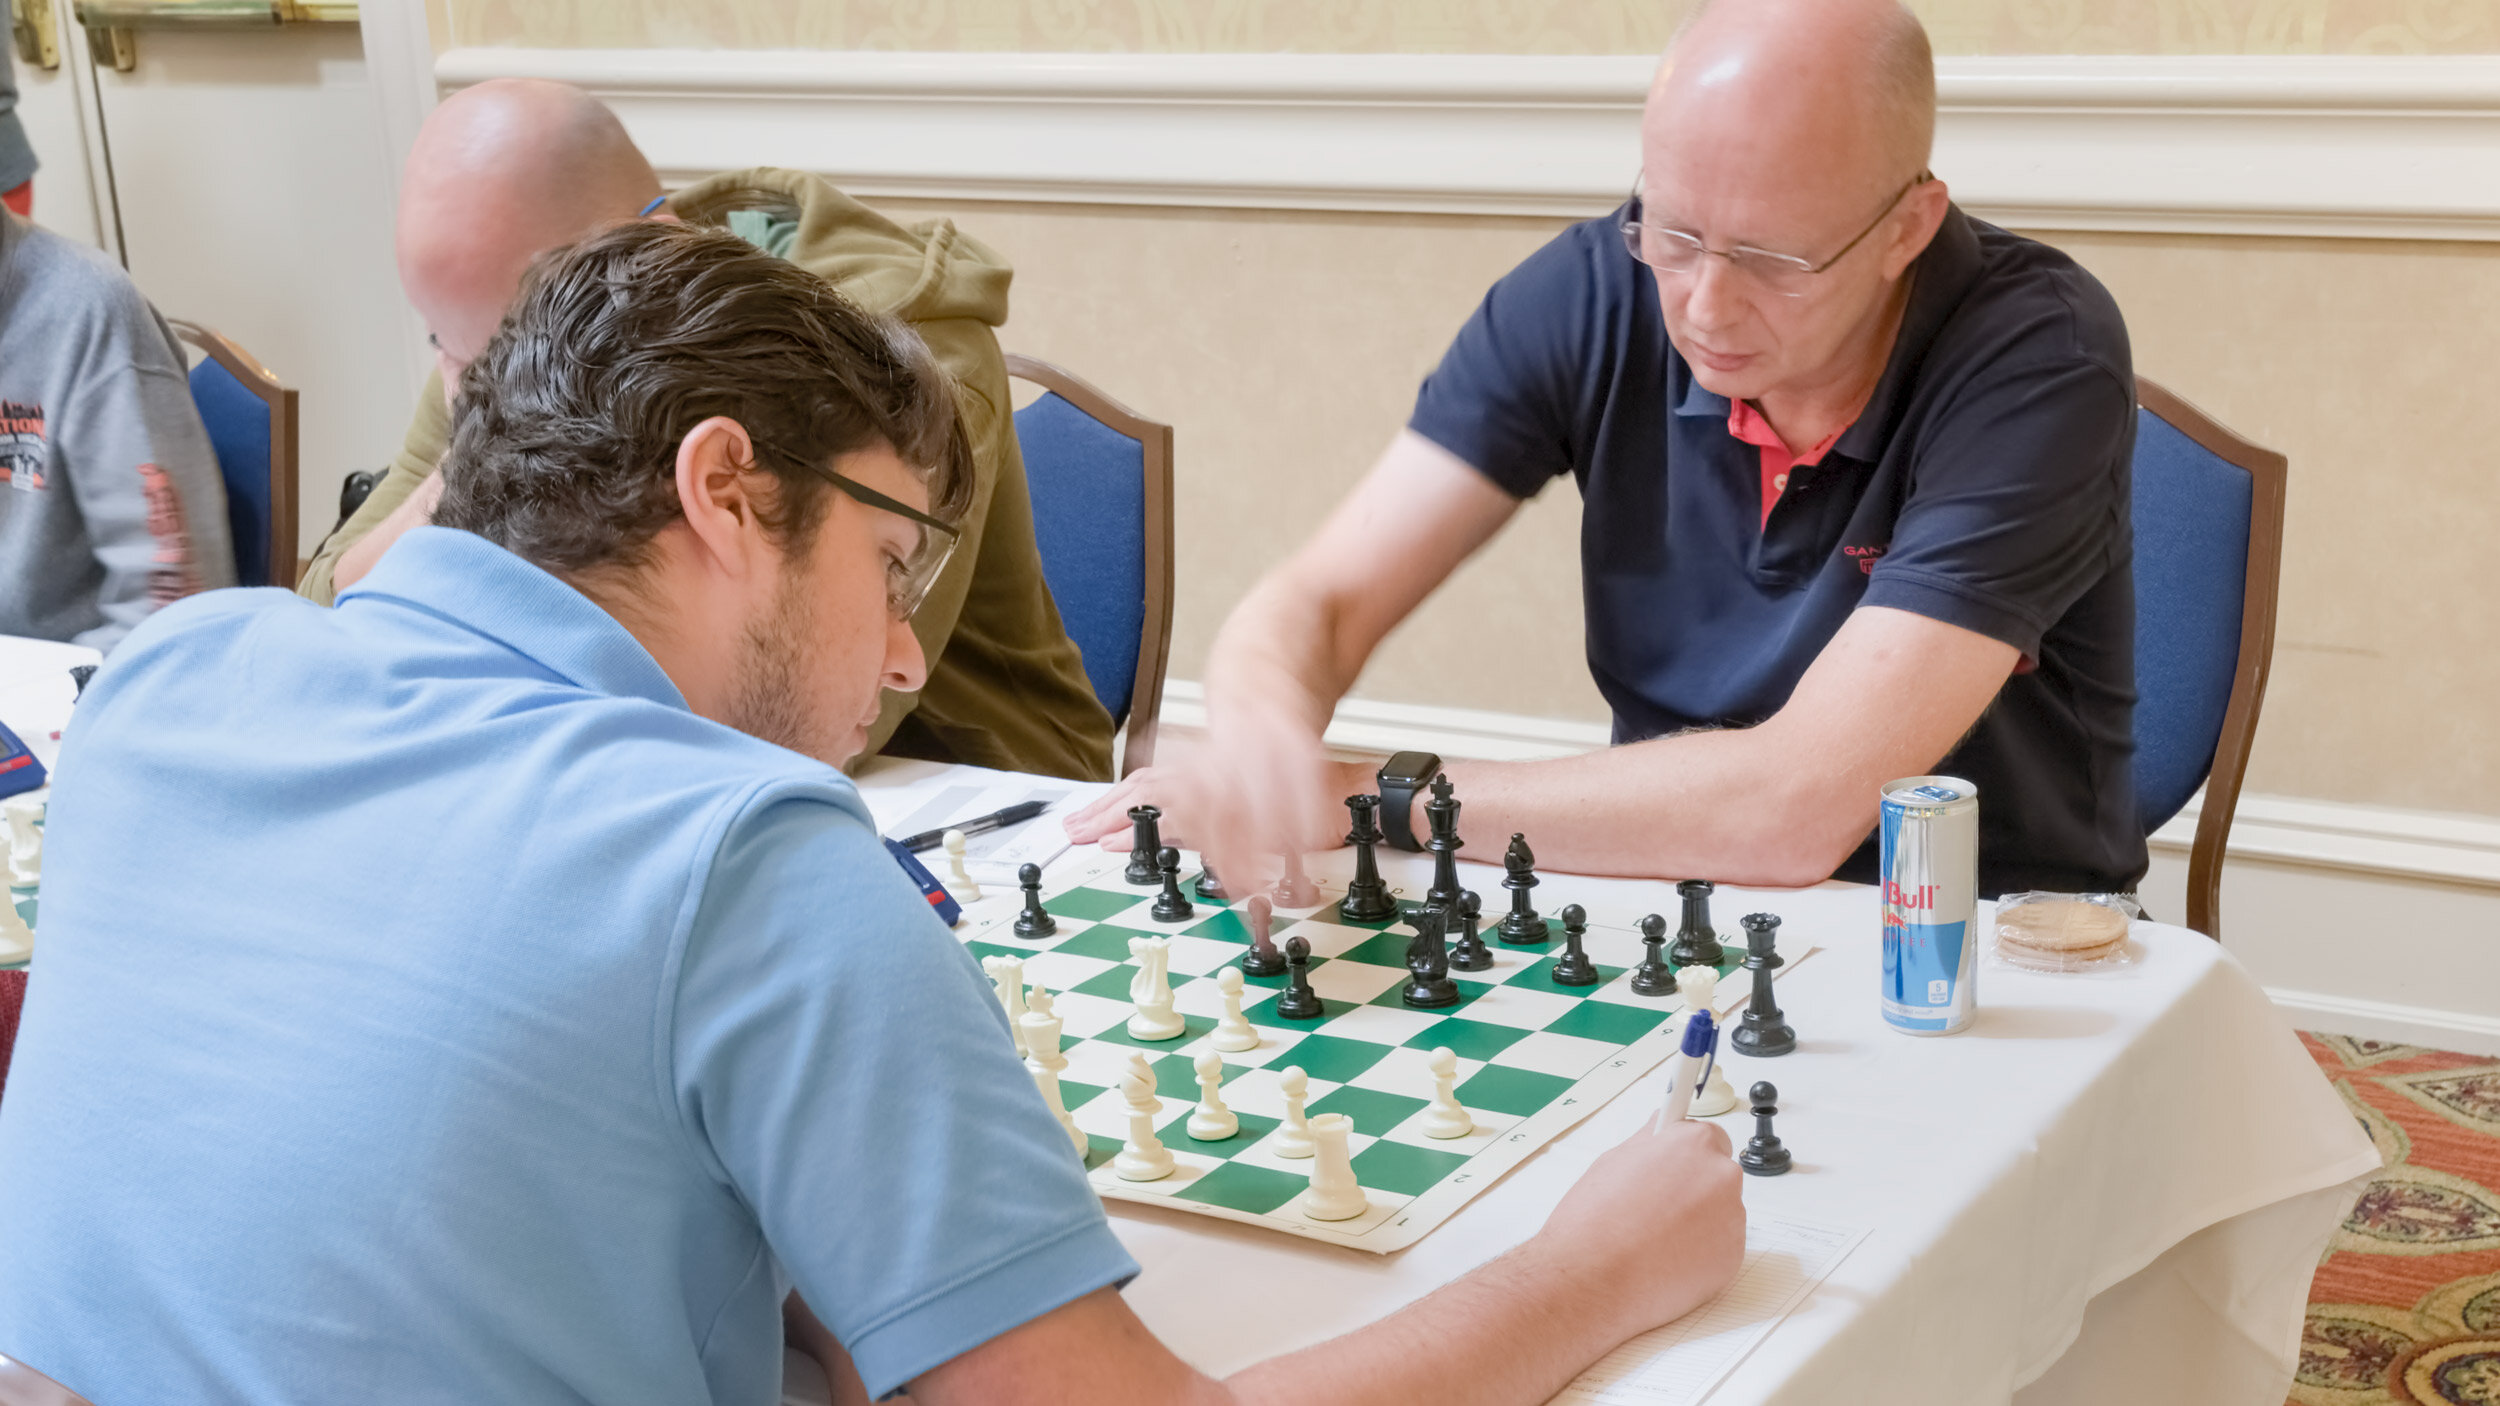 Round 4, Board 1, Ryan Hamley (L) (2196) vs Han Schut (R) (2264), in their game that concluded with a draw.